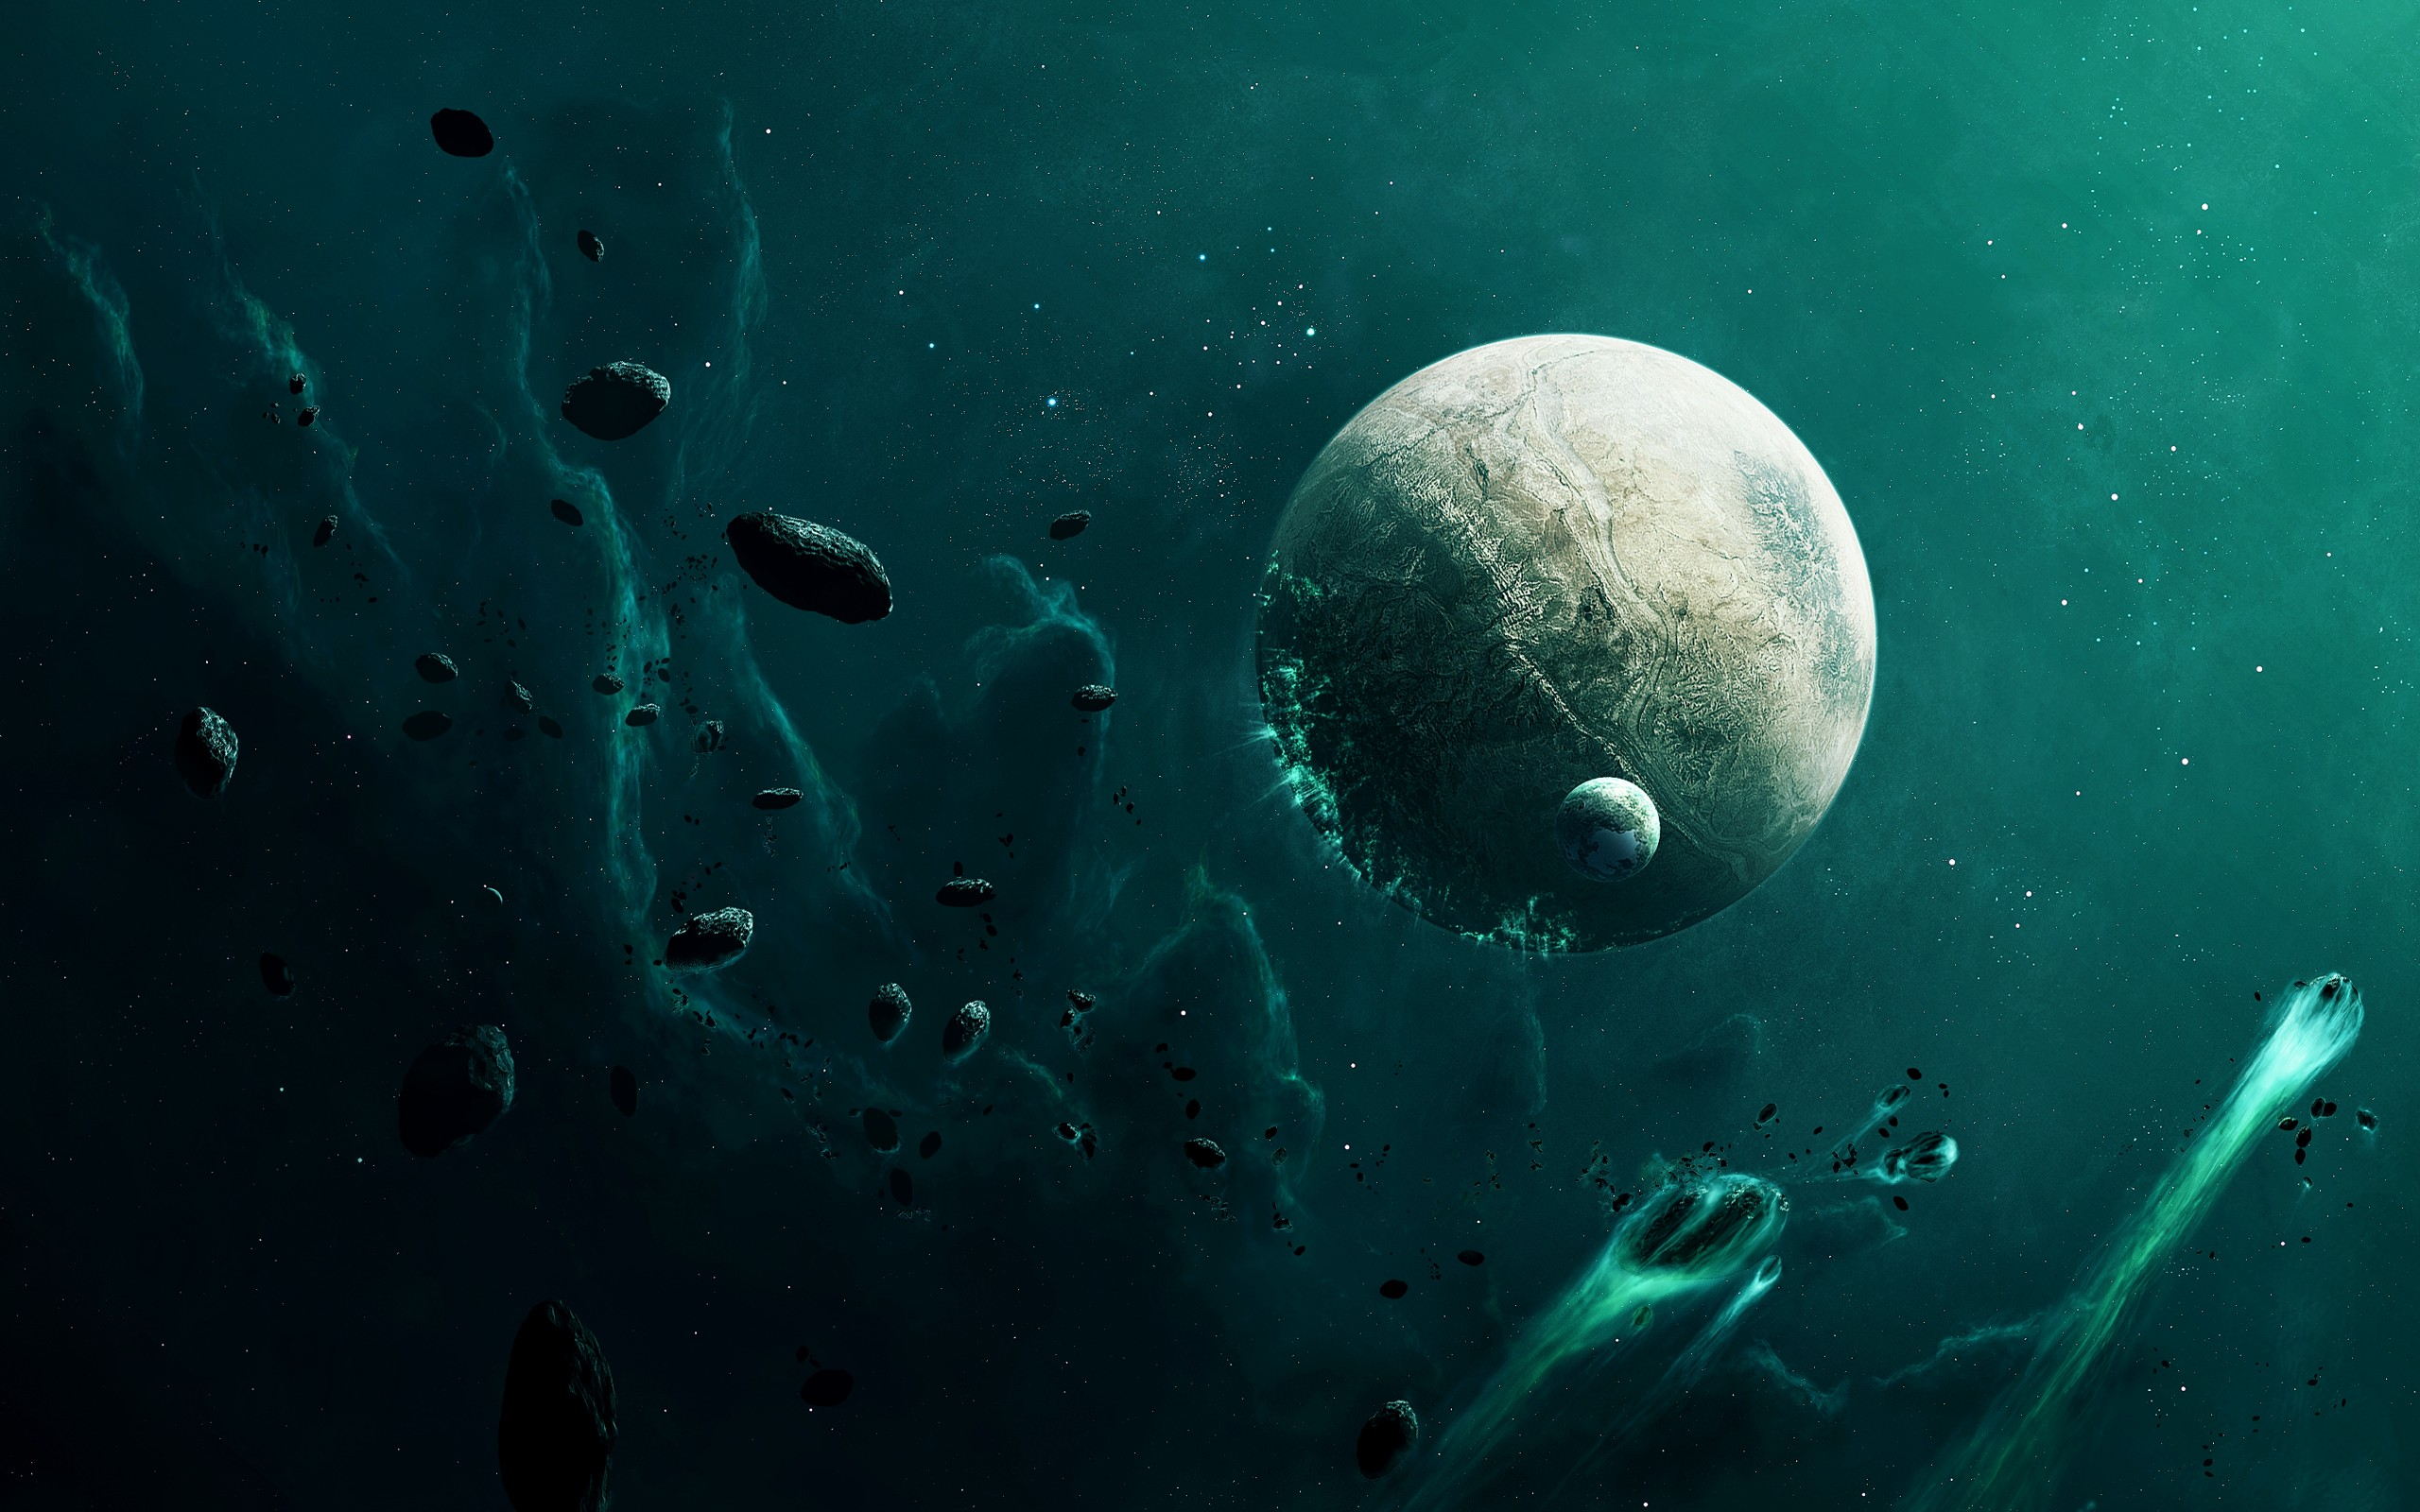 Planets Moon & Asteroids wallpapers | Planets Moon ...